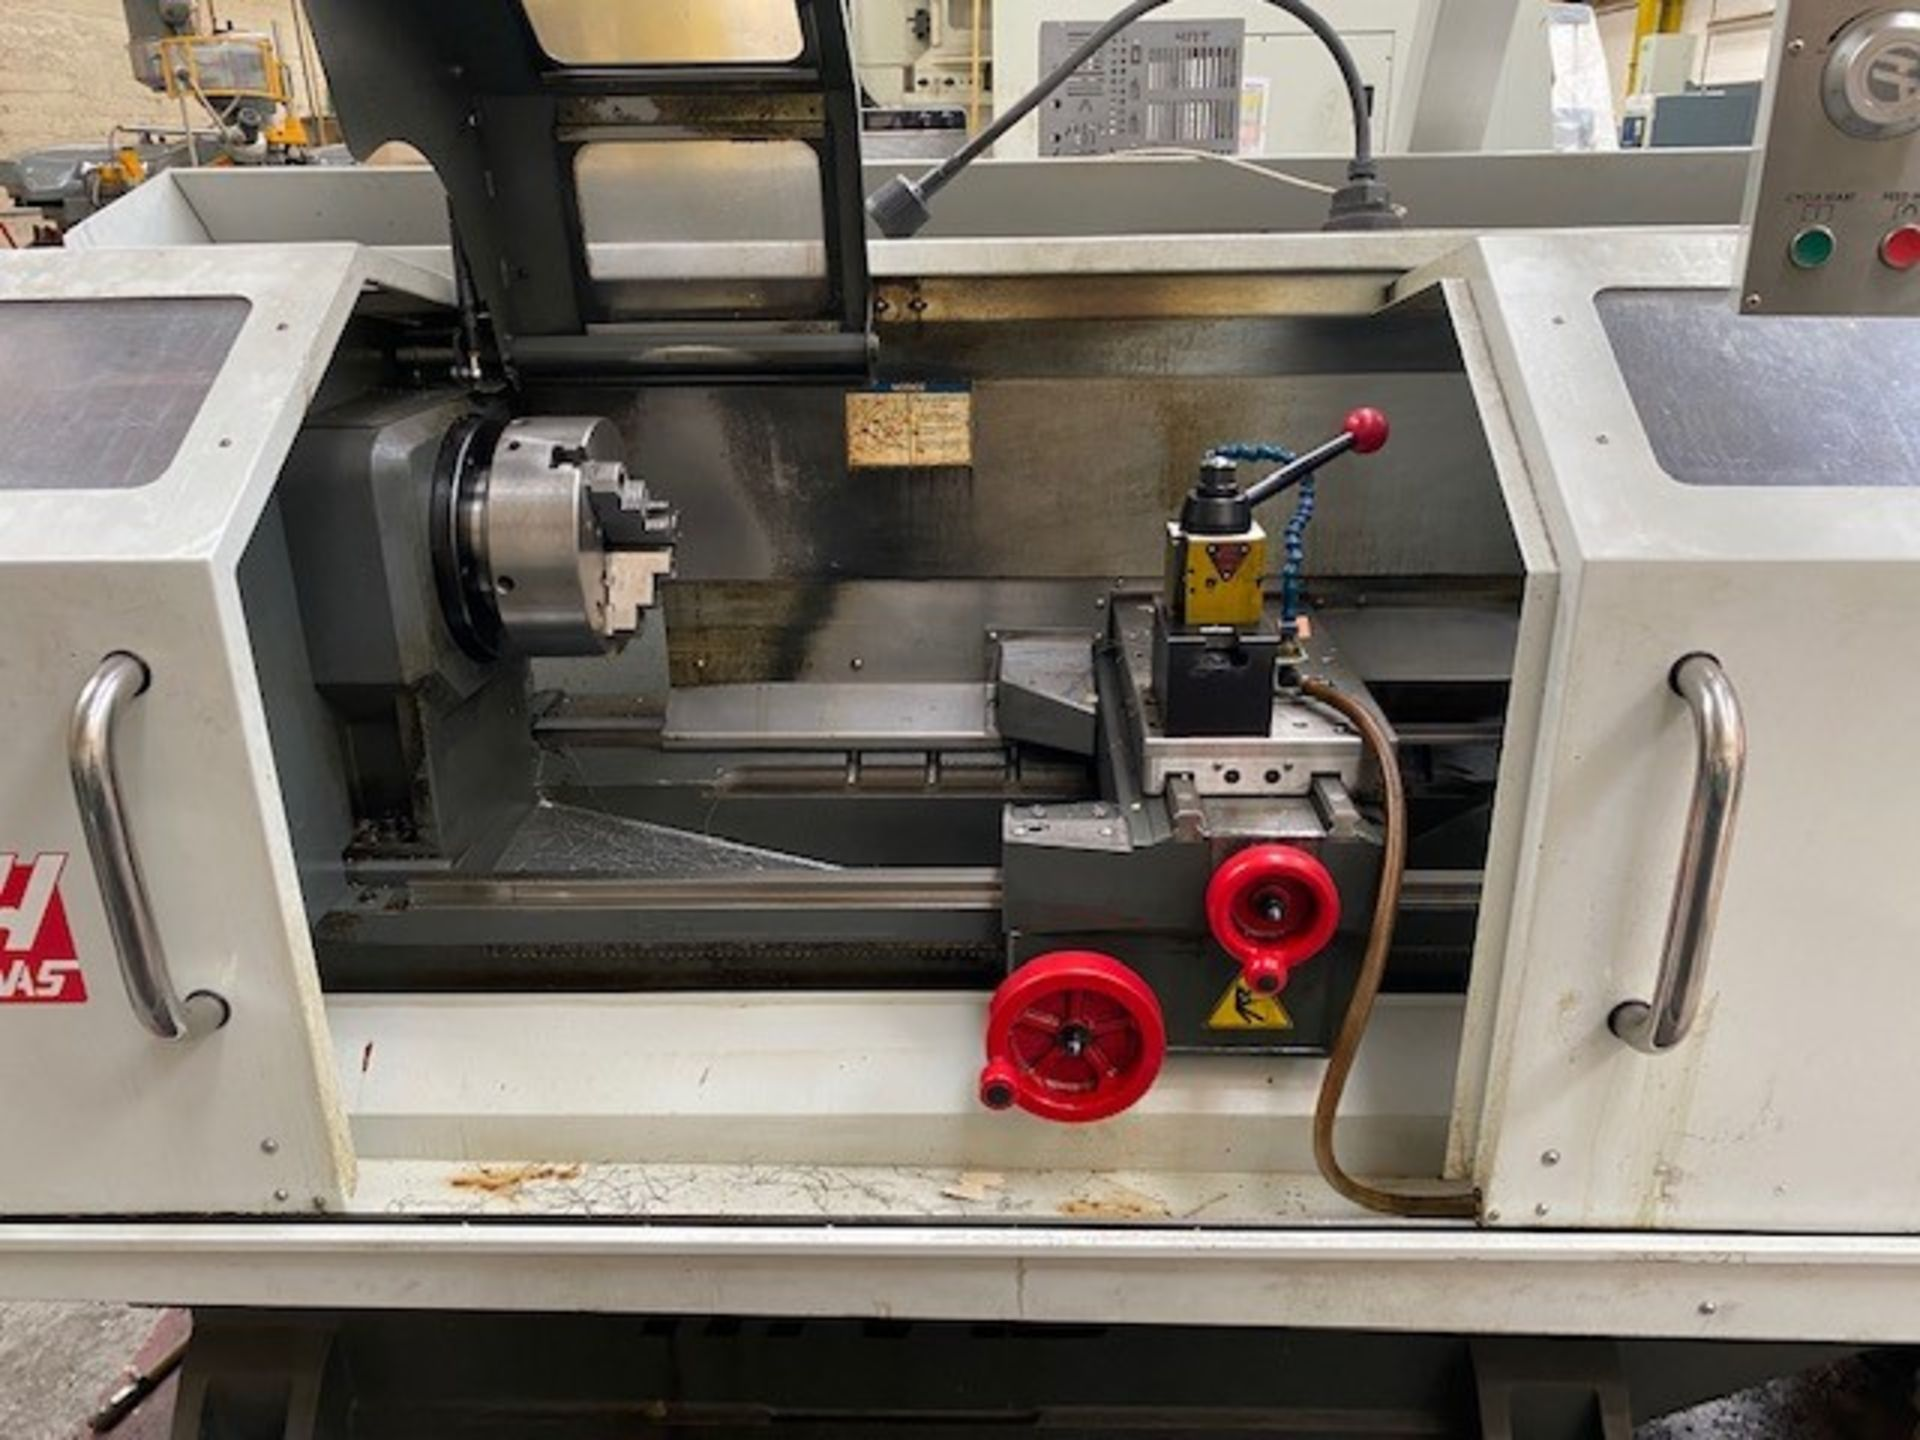 HASS ENCLOSED 2-AXIS CNC TOOLROOM LATHE WITH HASS CONTROLLER MODEL: TL-2 SERIAL NO: 3089388 DMF: - Image 4 of 5